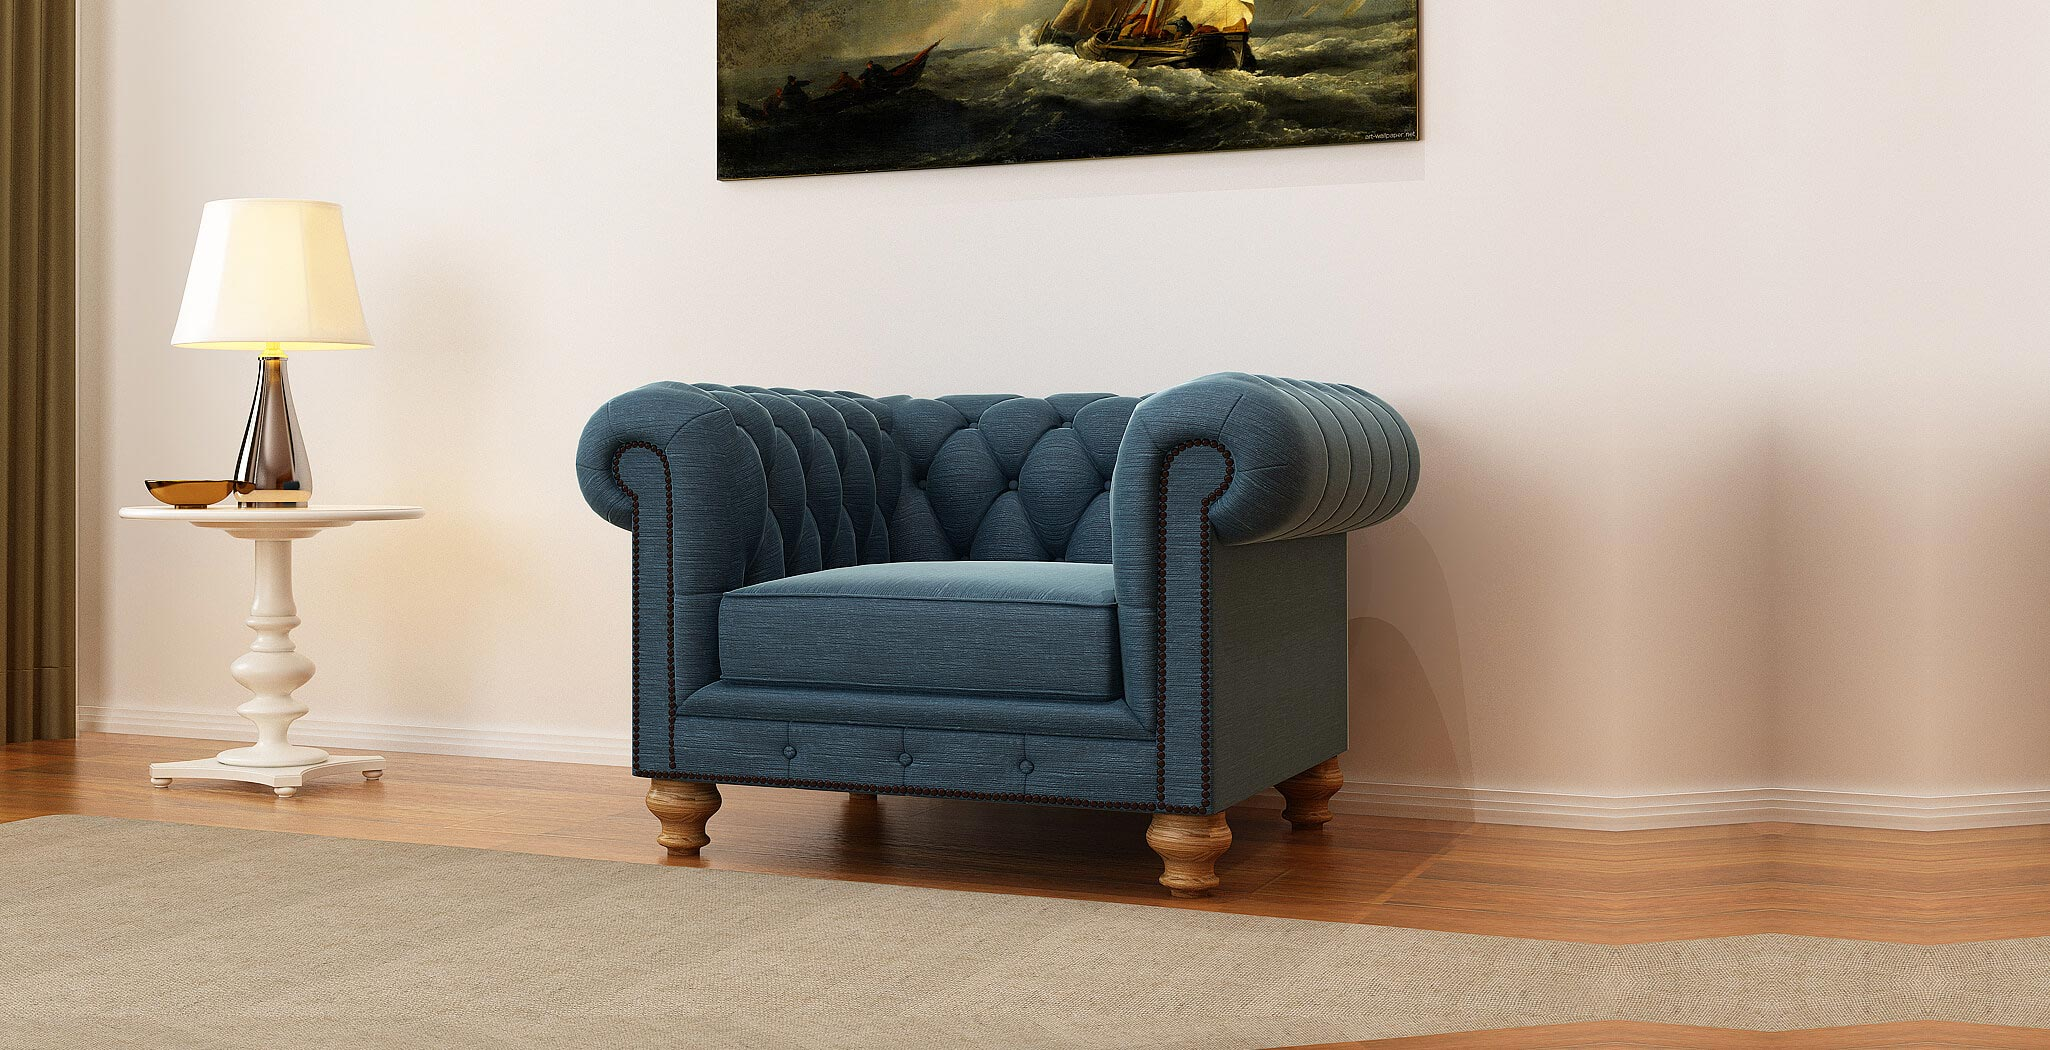 bordeaux chair furniture gallery 2